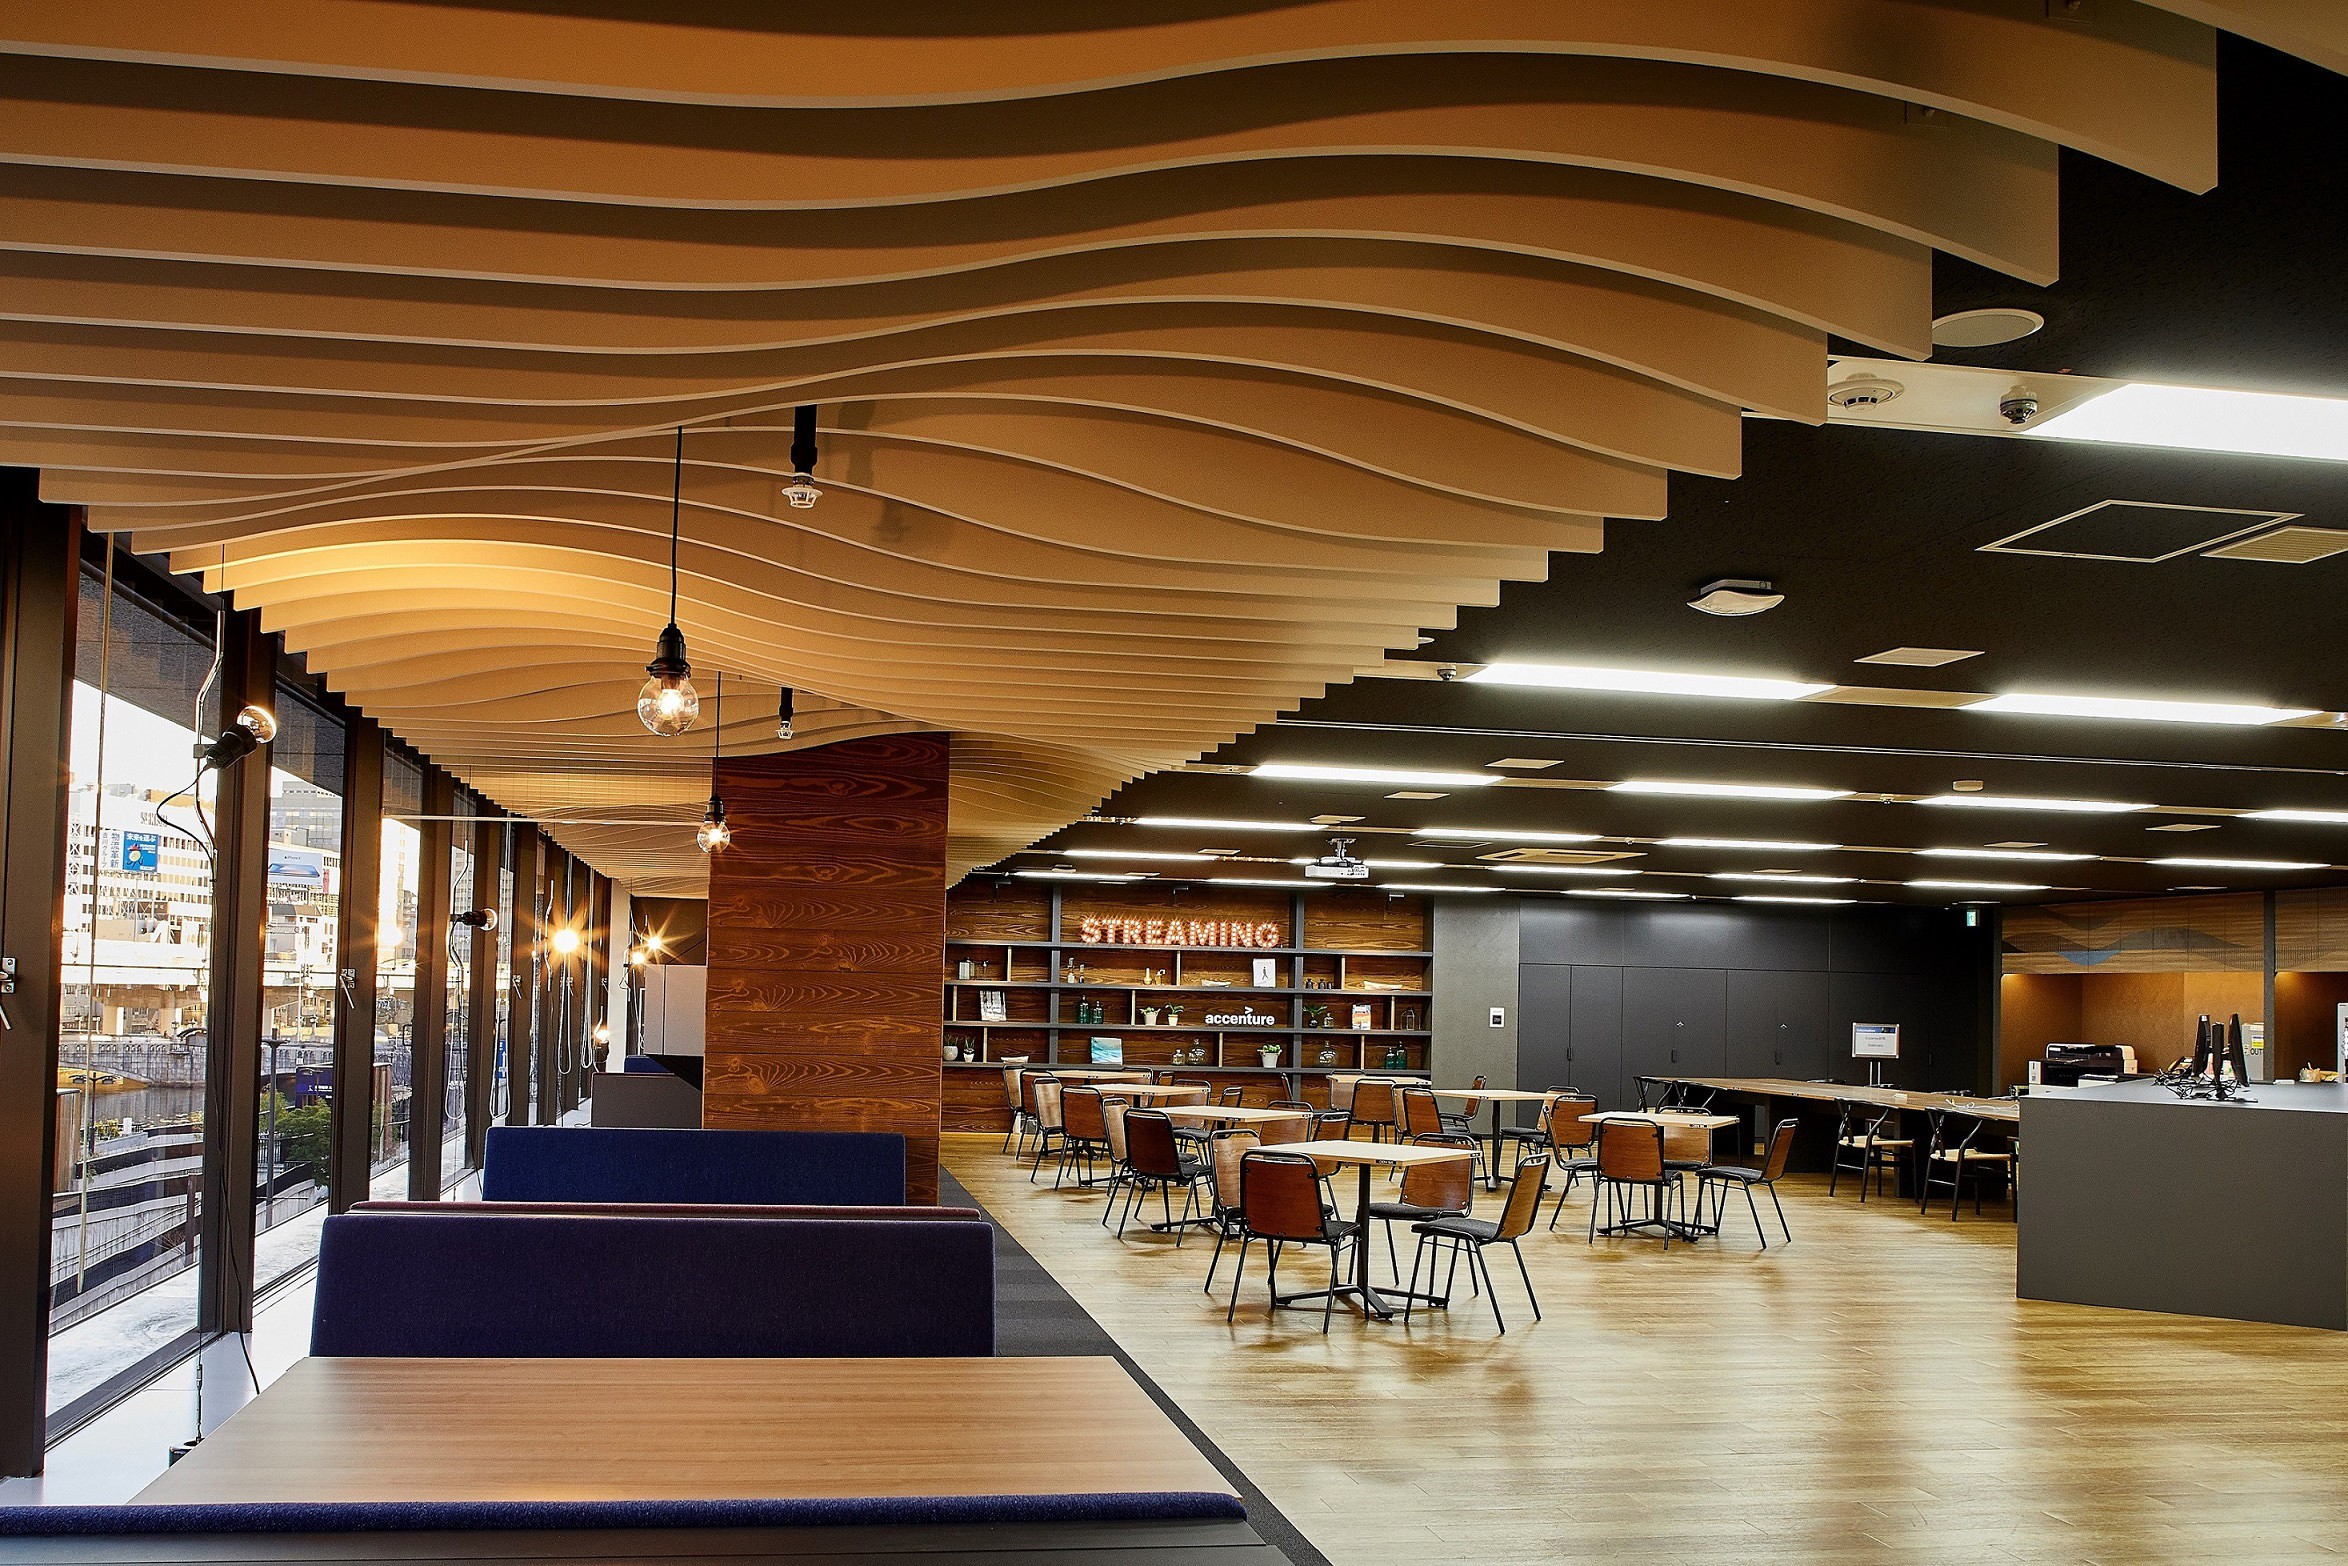 Interiors of one of Accenture's global offices featuring a social space